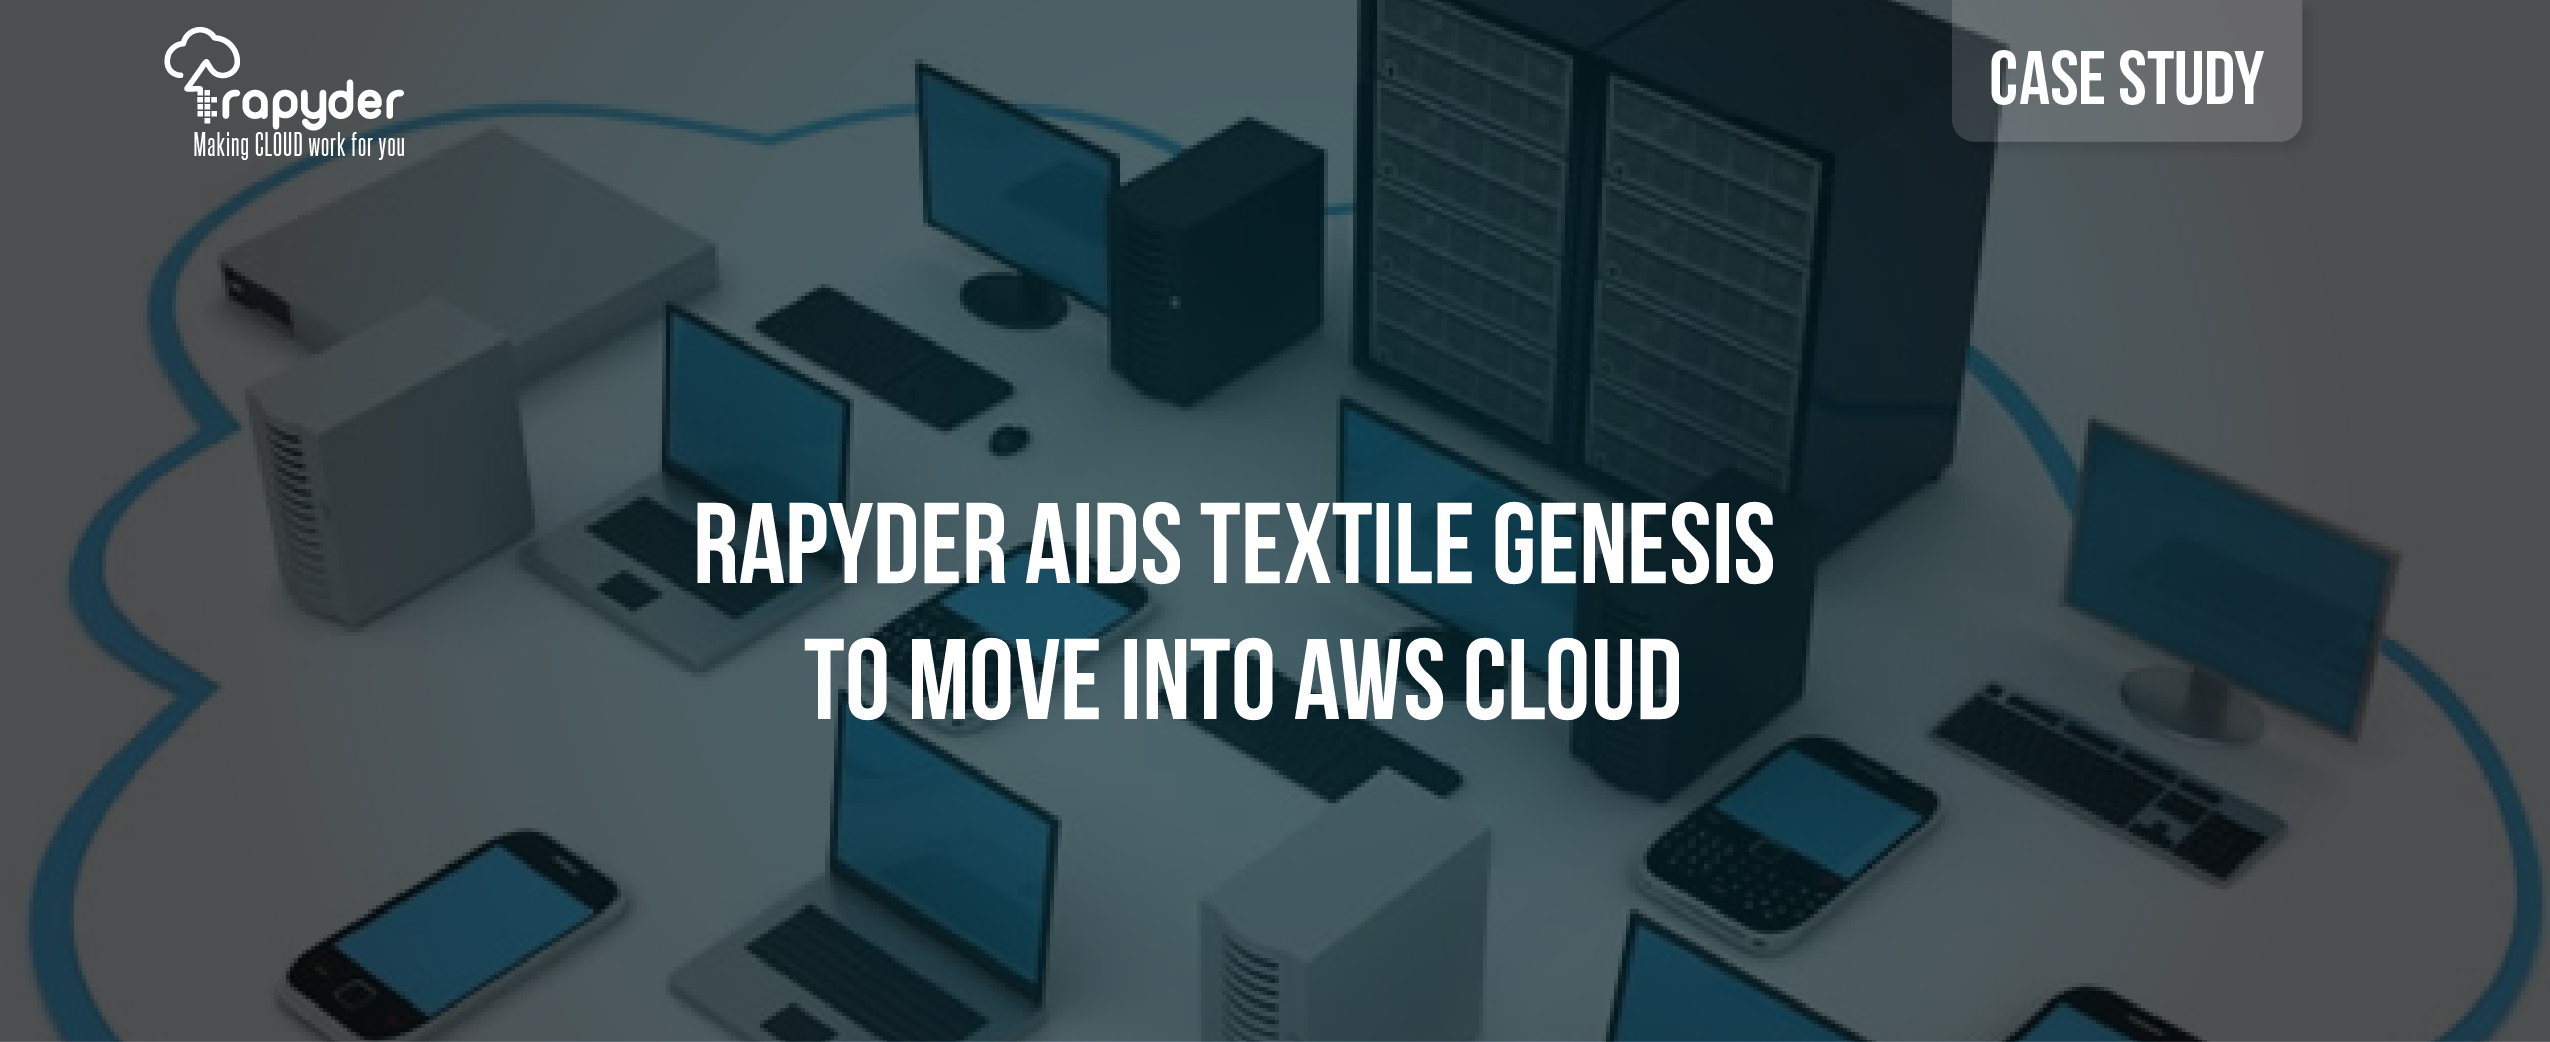 Case Study 30 08 01 - Rapyder aids Textile Genesis to move into AWS Cloud